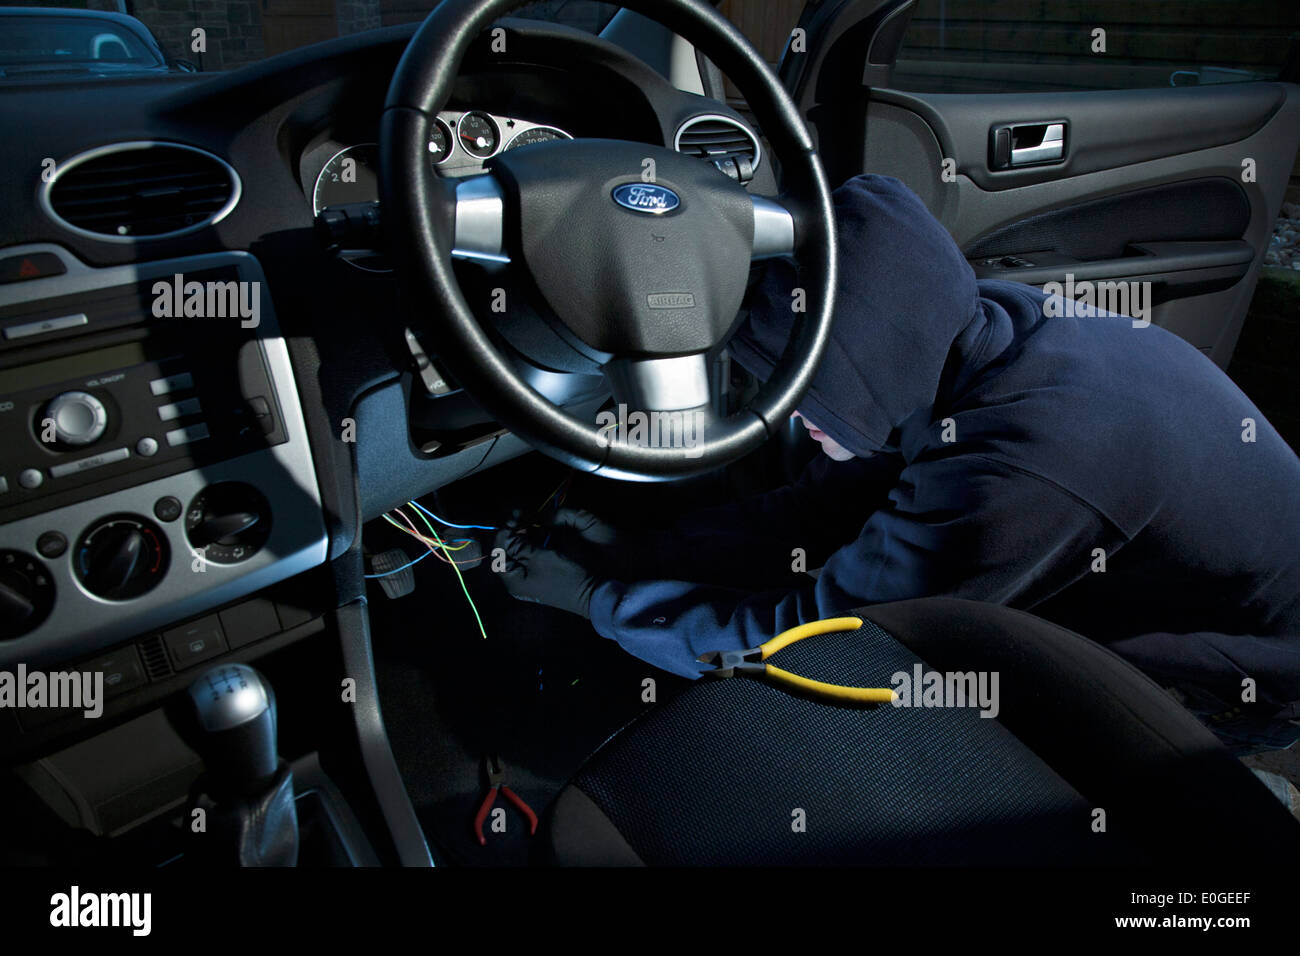 hight resolution of a man wearing a hoody hot wiring a car stock image